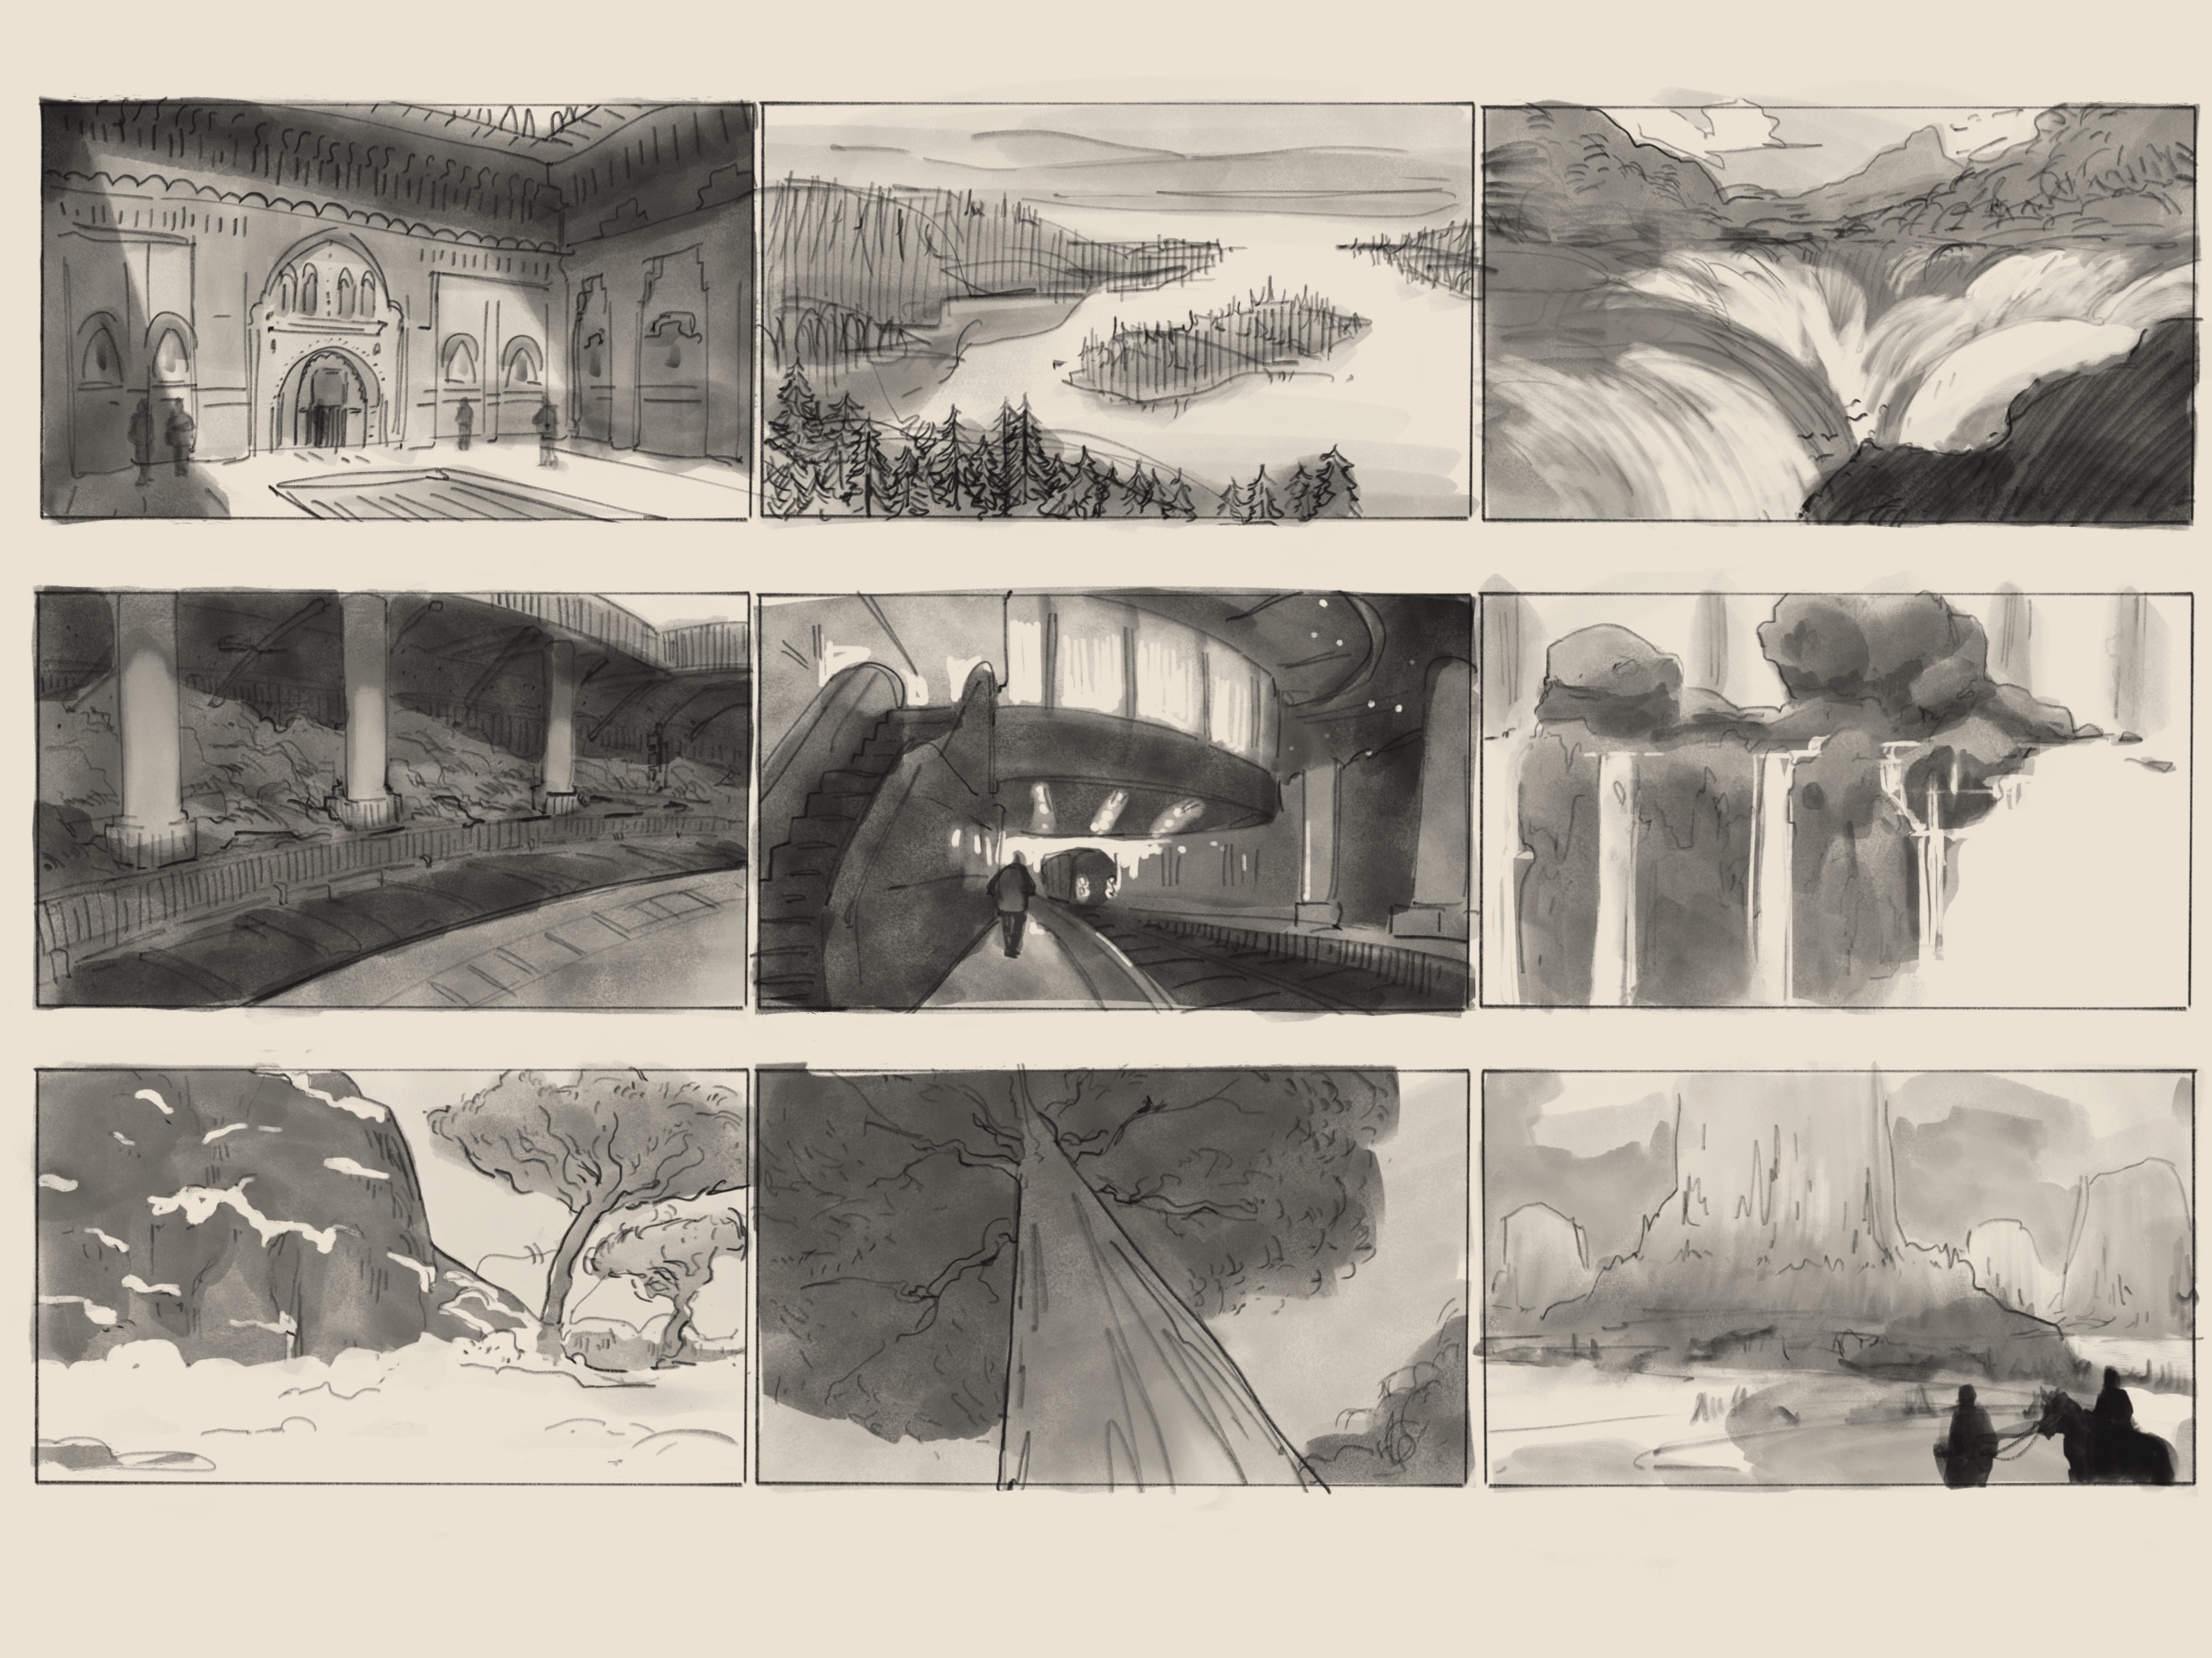 Sample of some enviro thumbnail sketches.